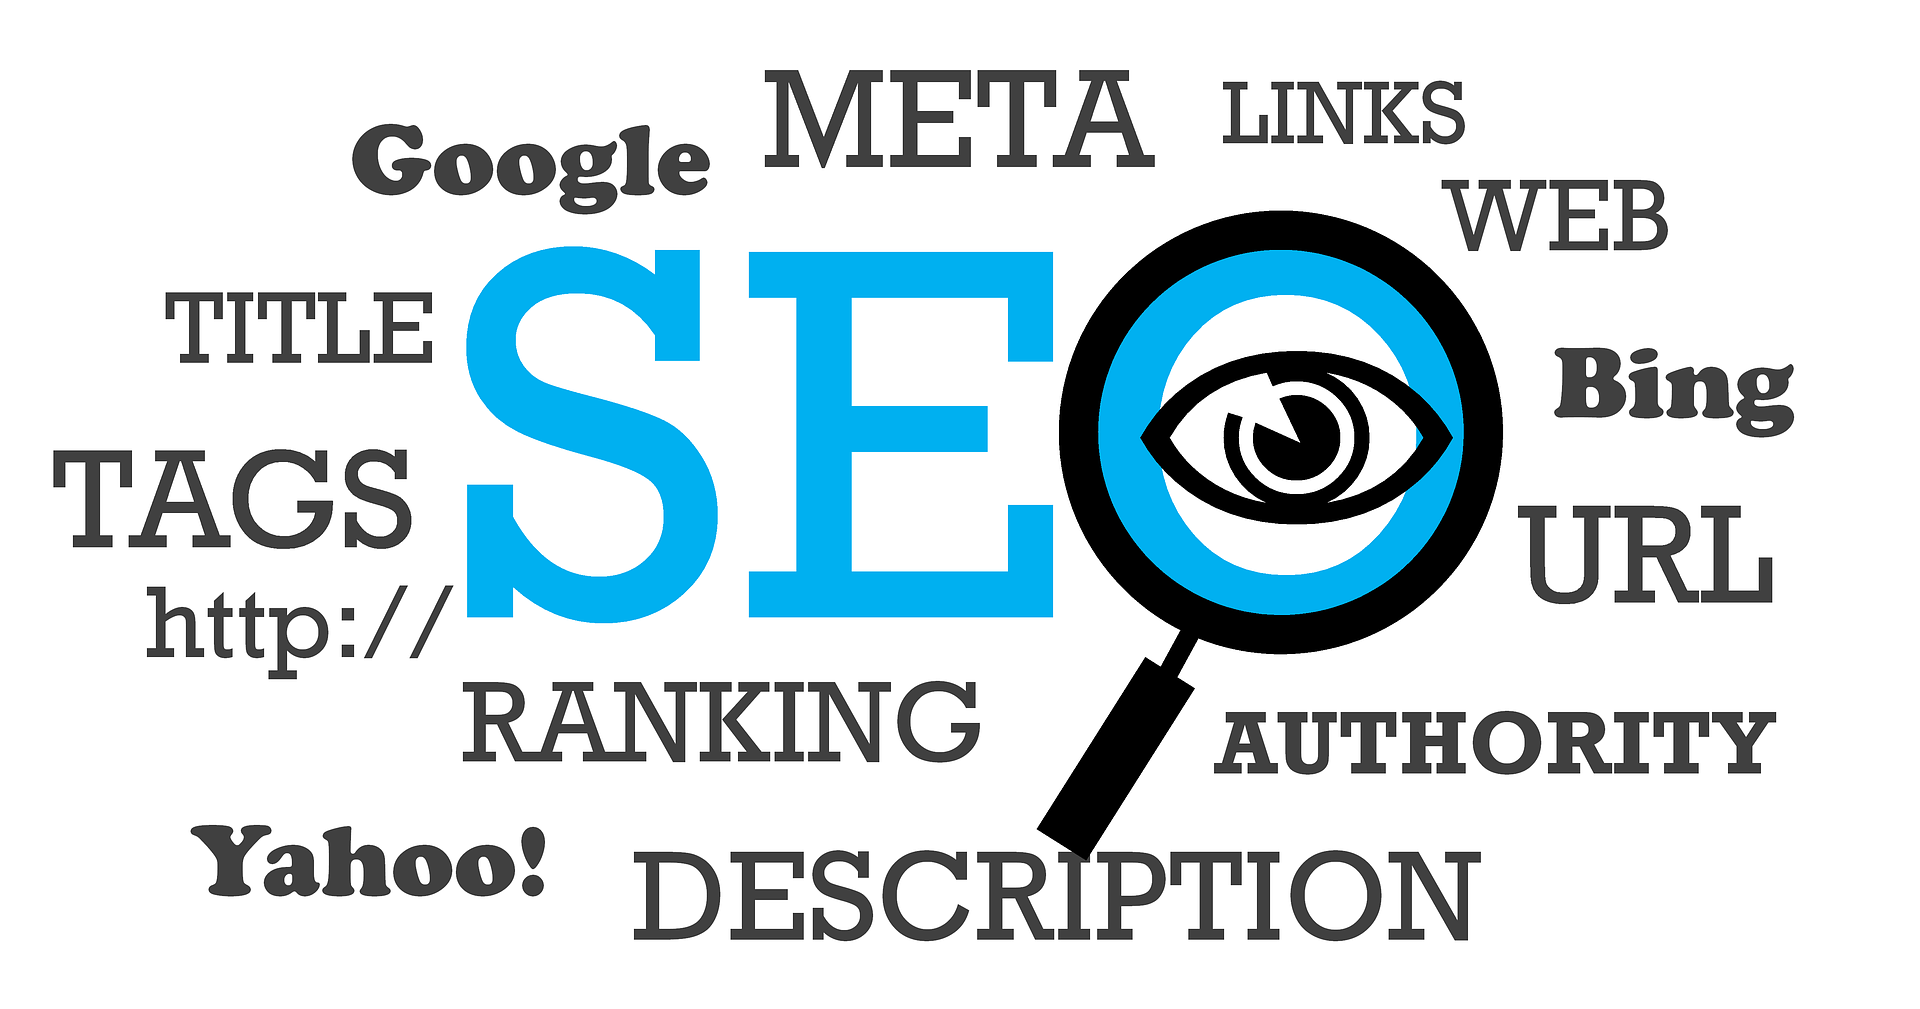 search engine optimization, SEO, terms